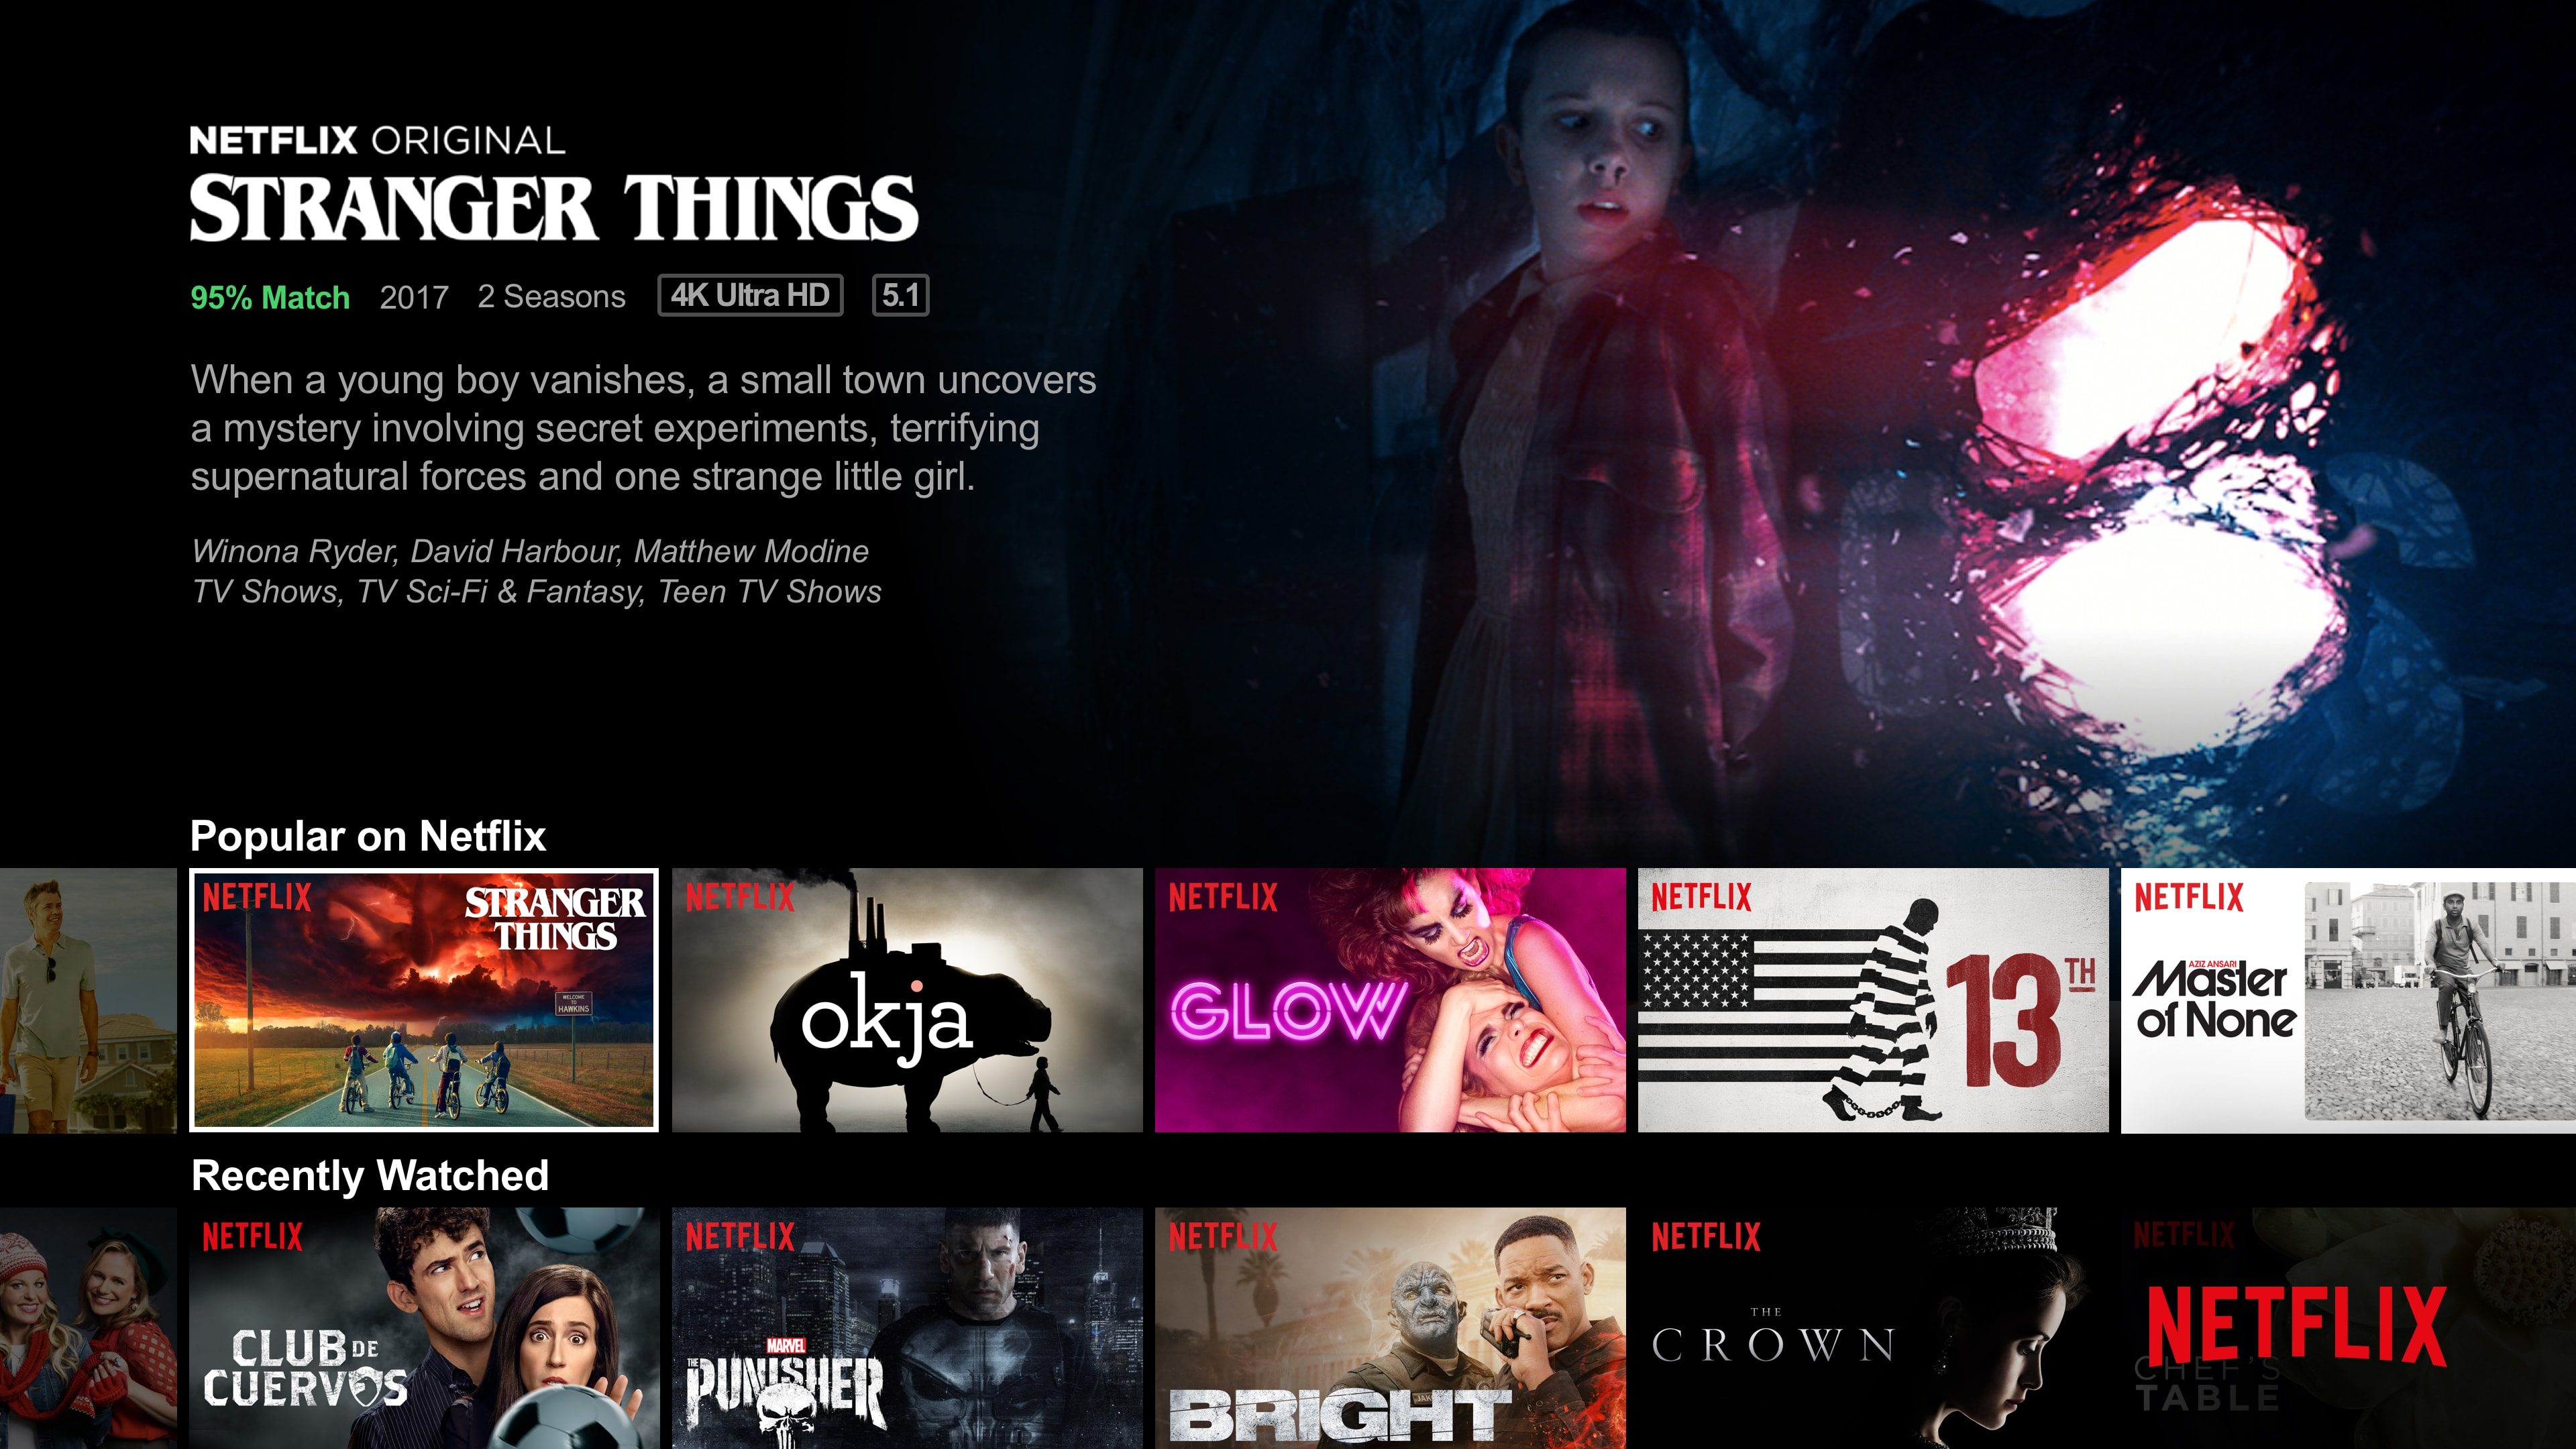 Netflix in August: Convincing you to binge-watch these shows with a sentence